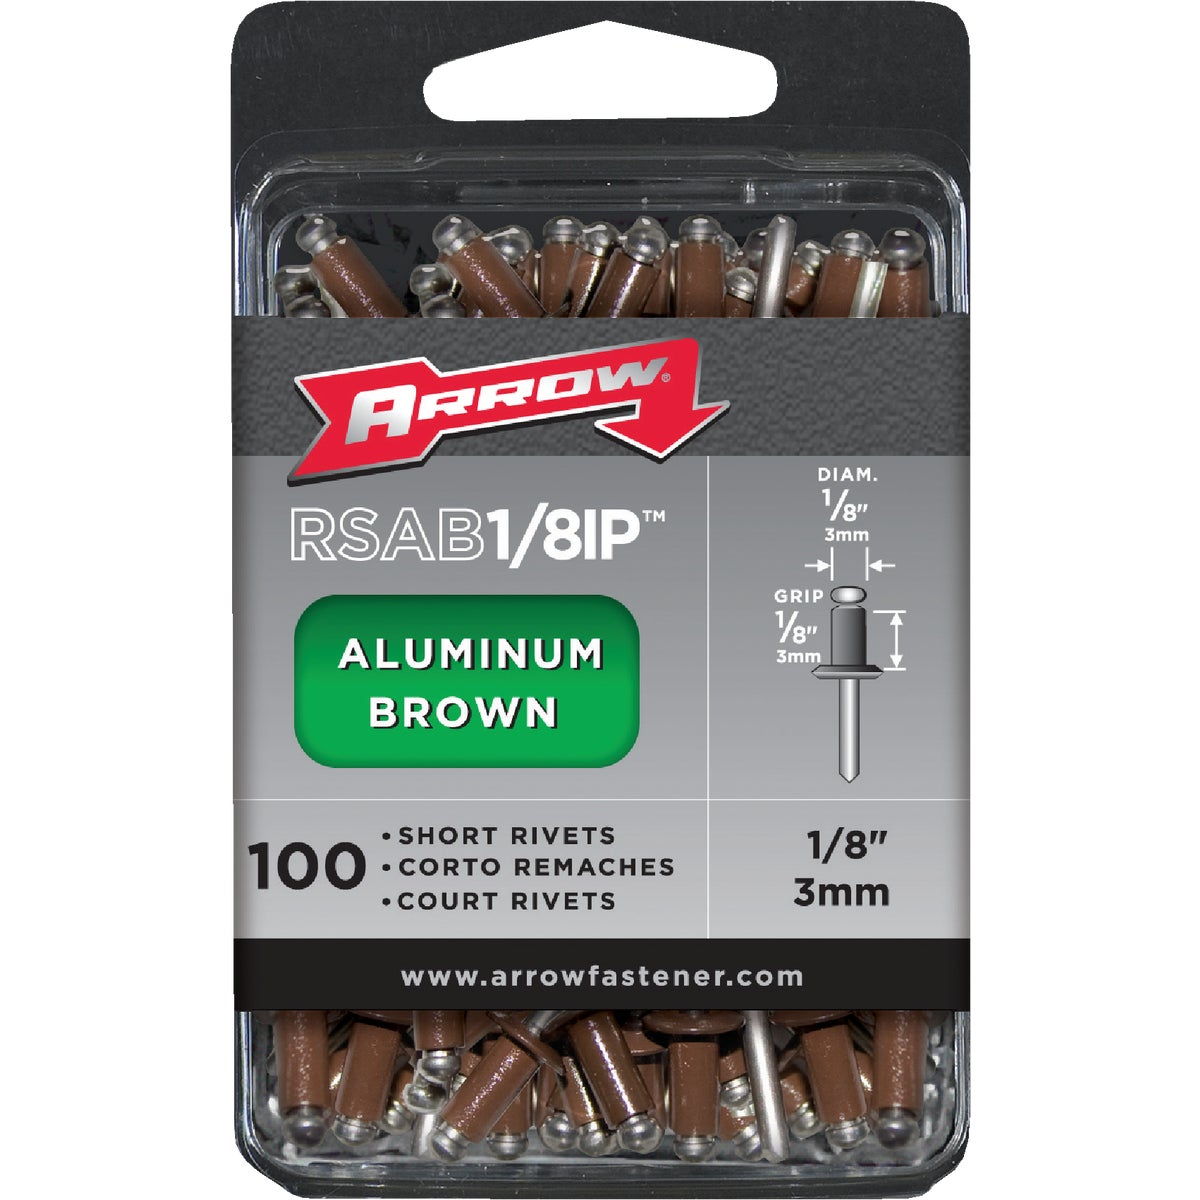 1/8X1/8 BRN ALUM RIVET - RSAB1/8IP by Arrow Fastener Co